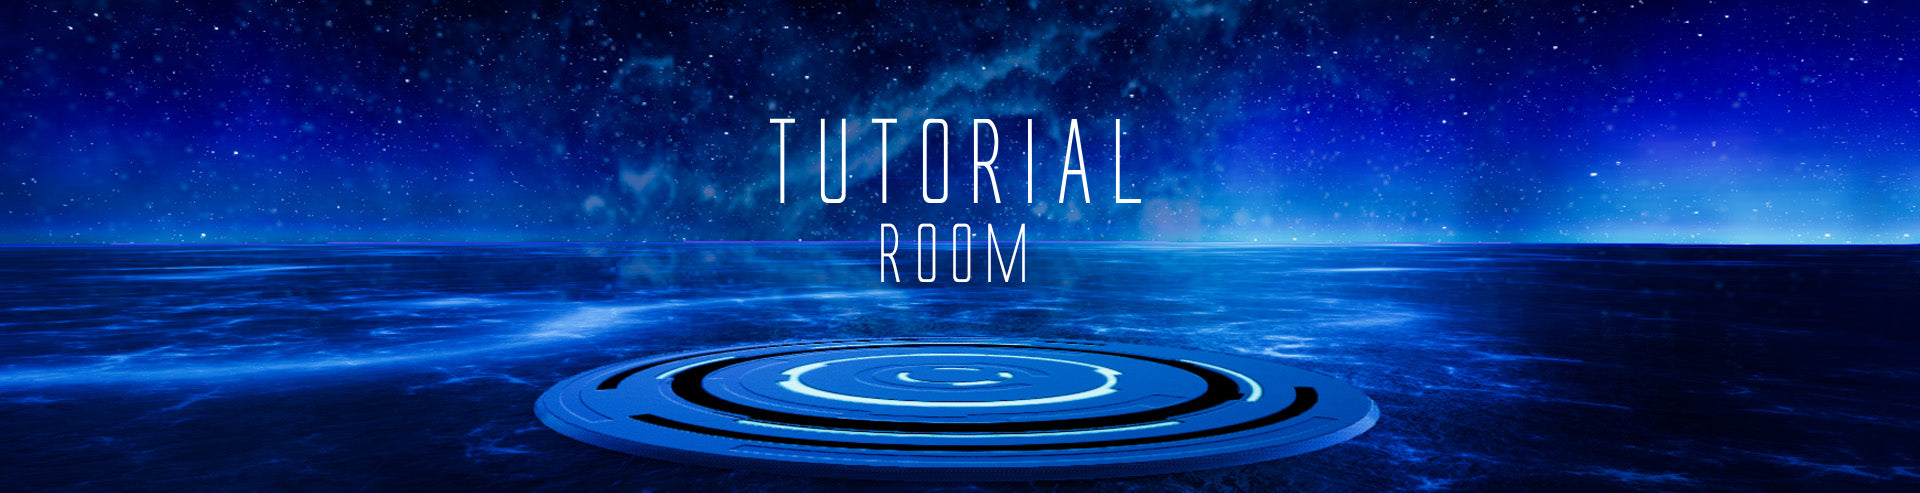 Tutorial Room